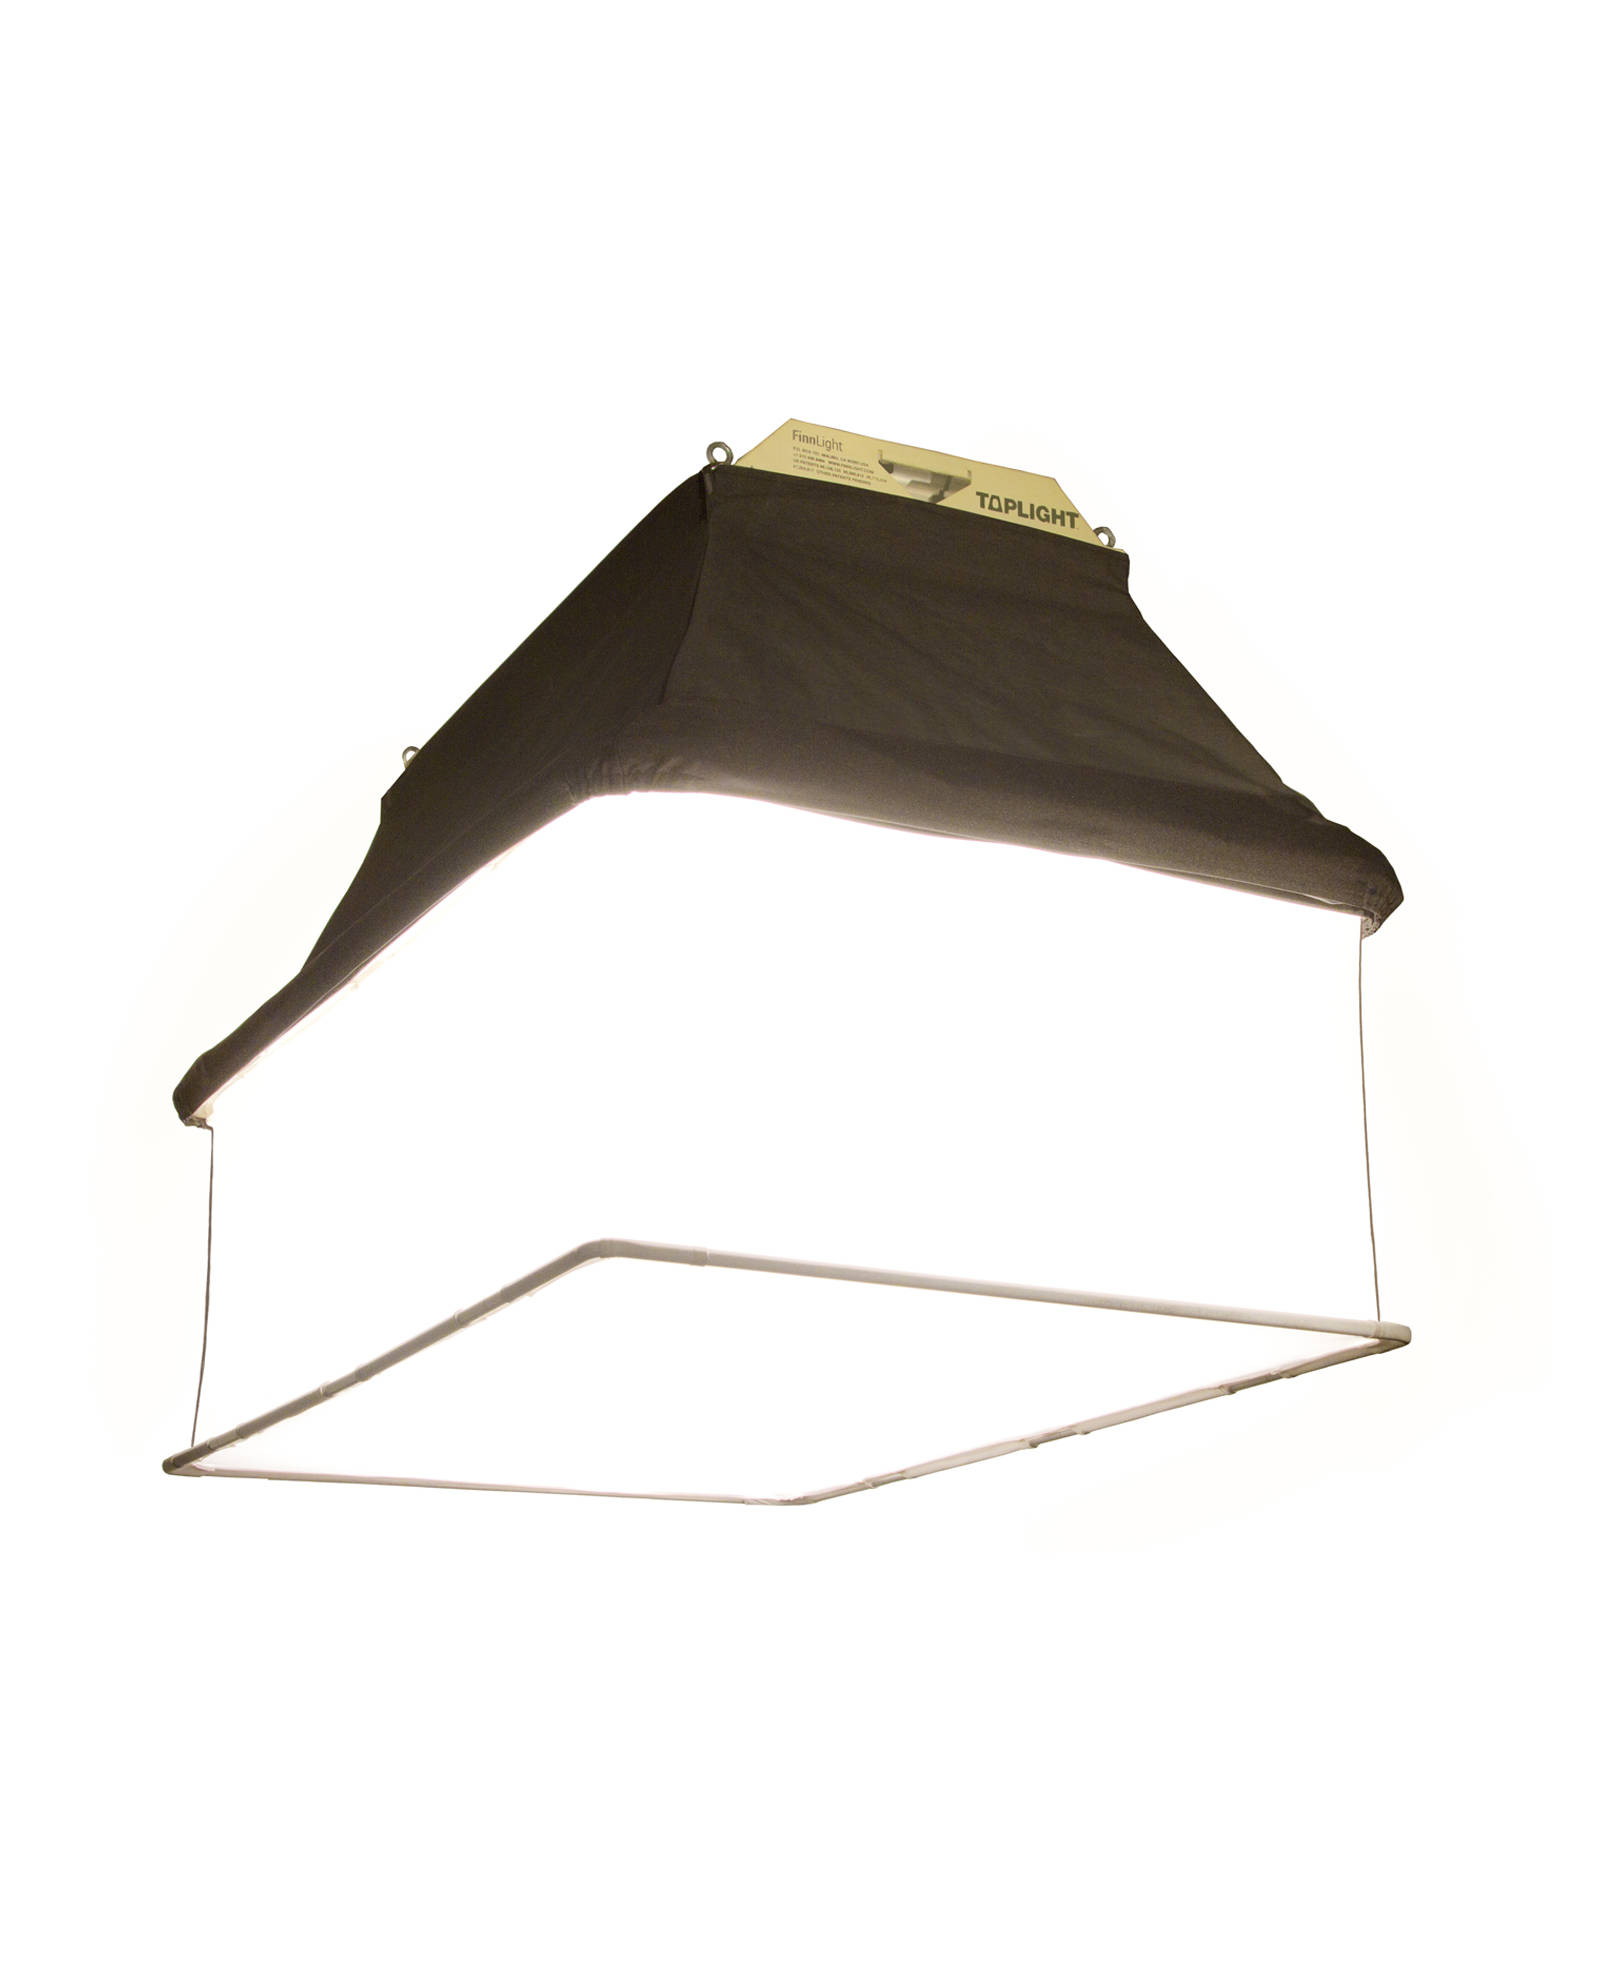 Tmb Solaris Top Light With Space Bag